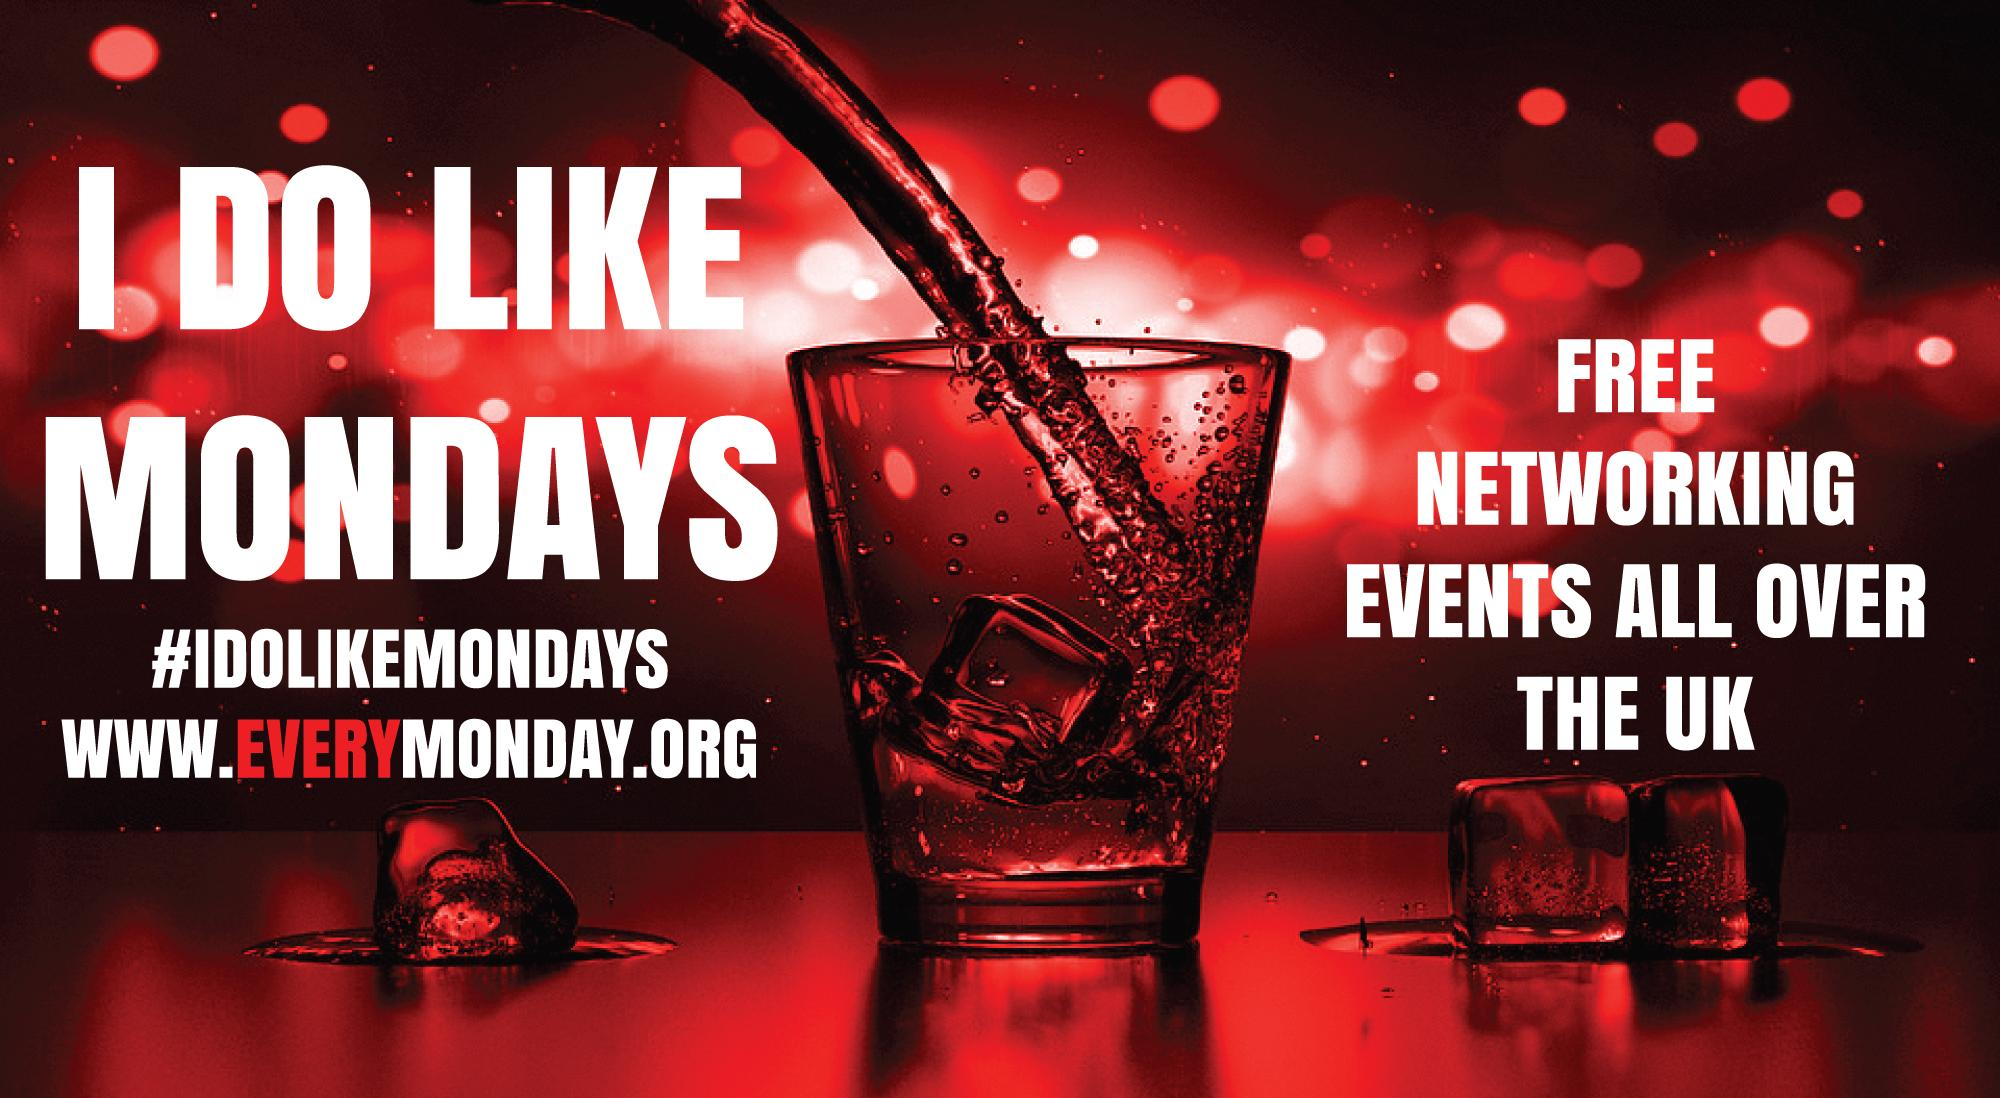 I DO LIKE MONDAYS! Free networking event in Henley-on-Thames